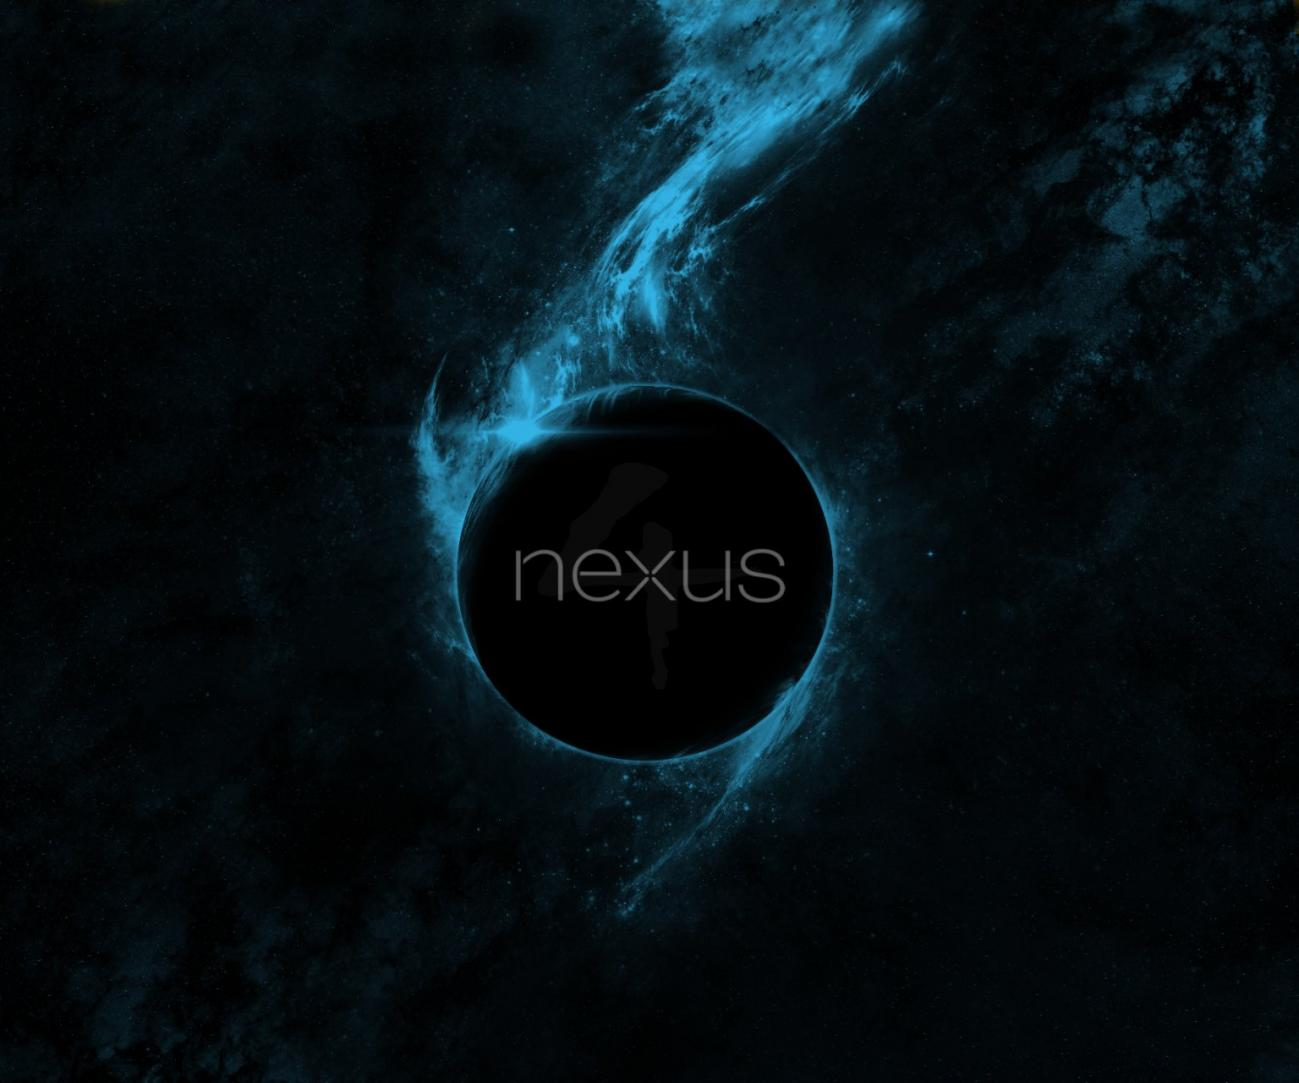 Photo Collection Wallpaper Nexus Hd